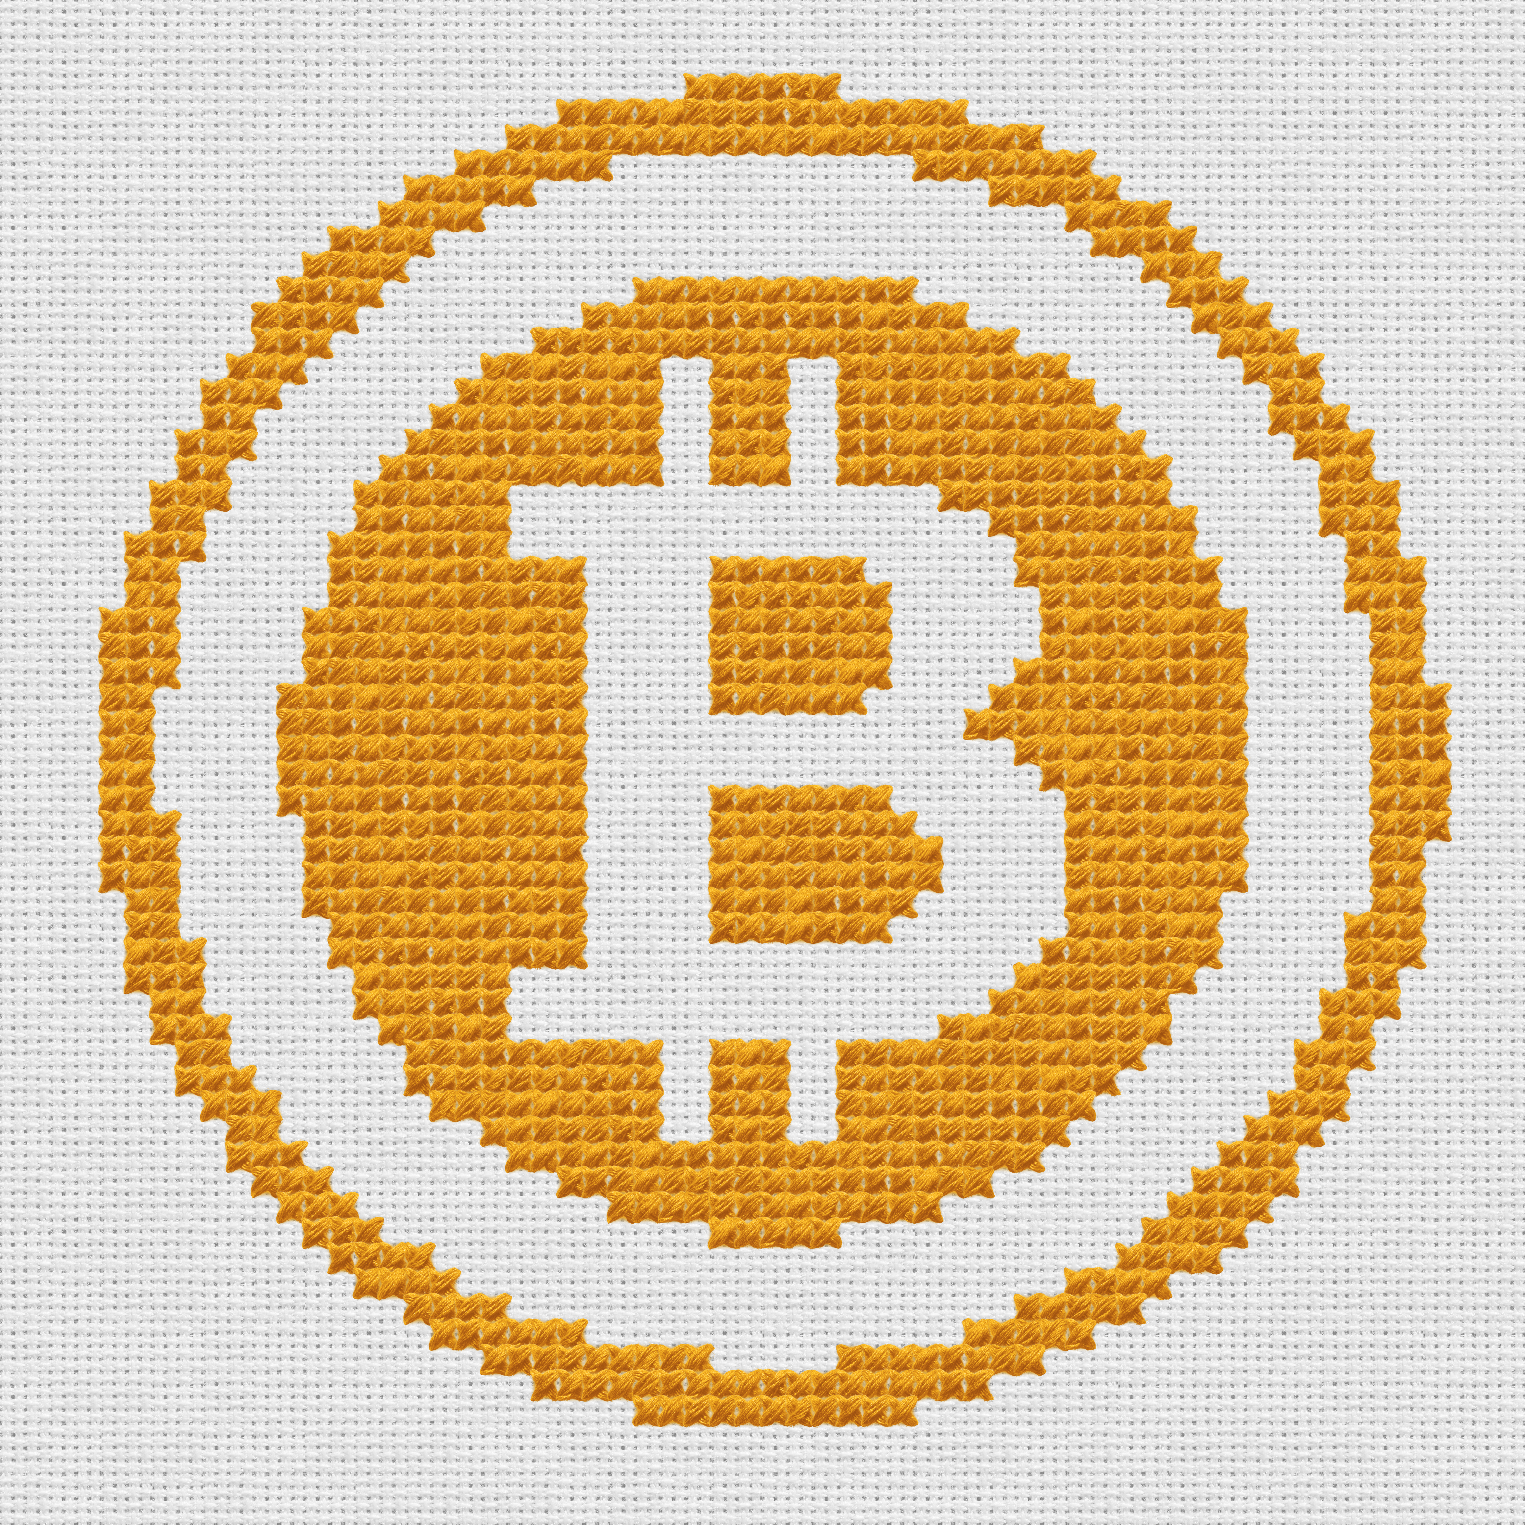 Cross stitch depicting bitcoin logo. It's made with our